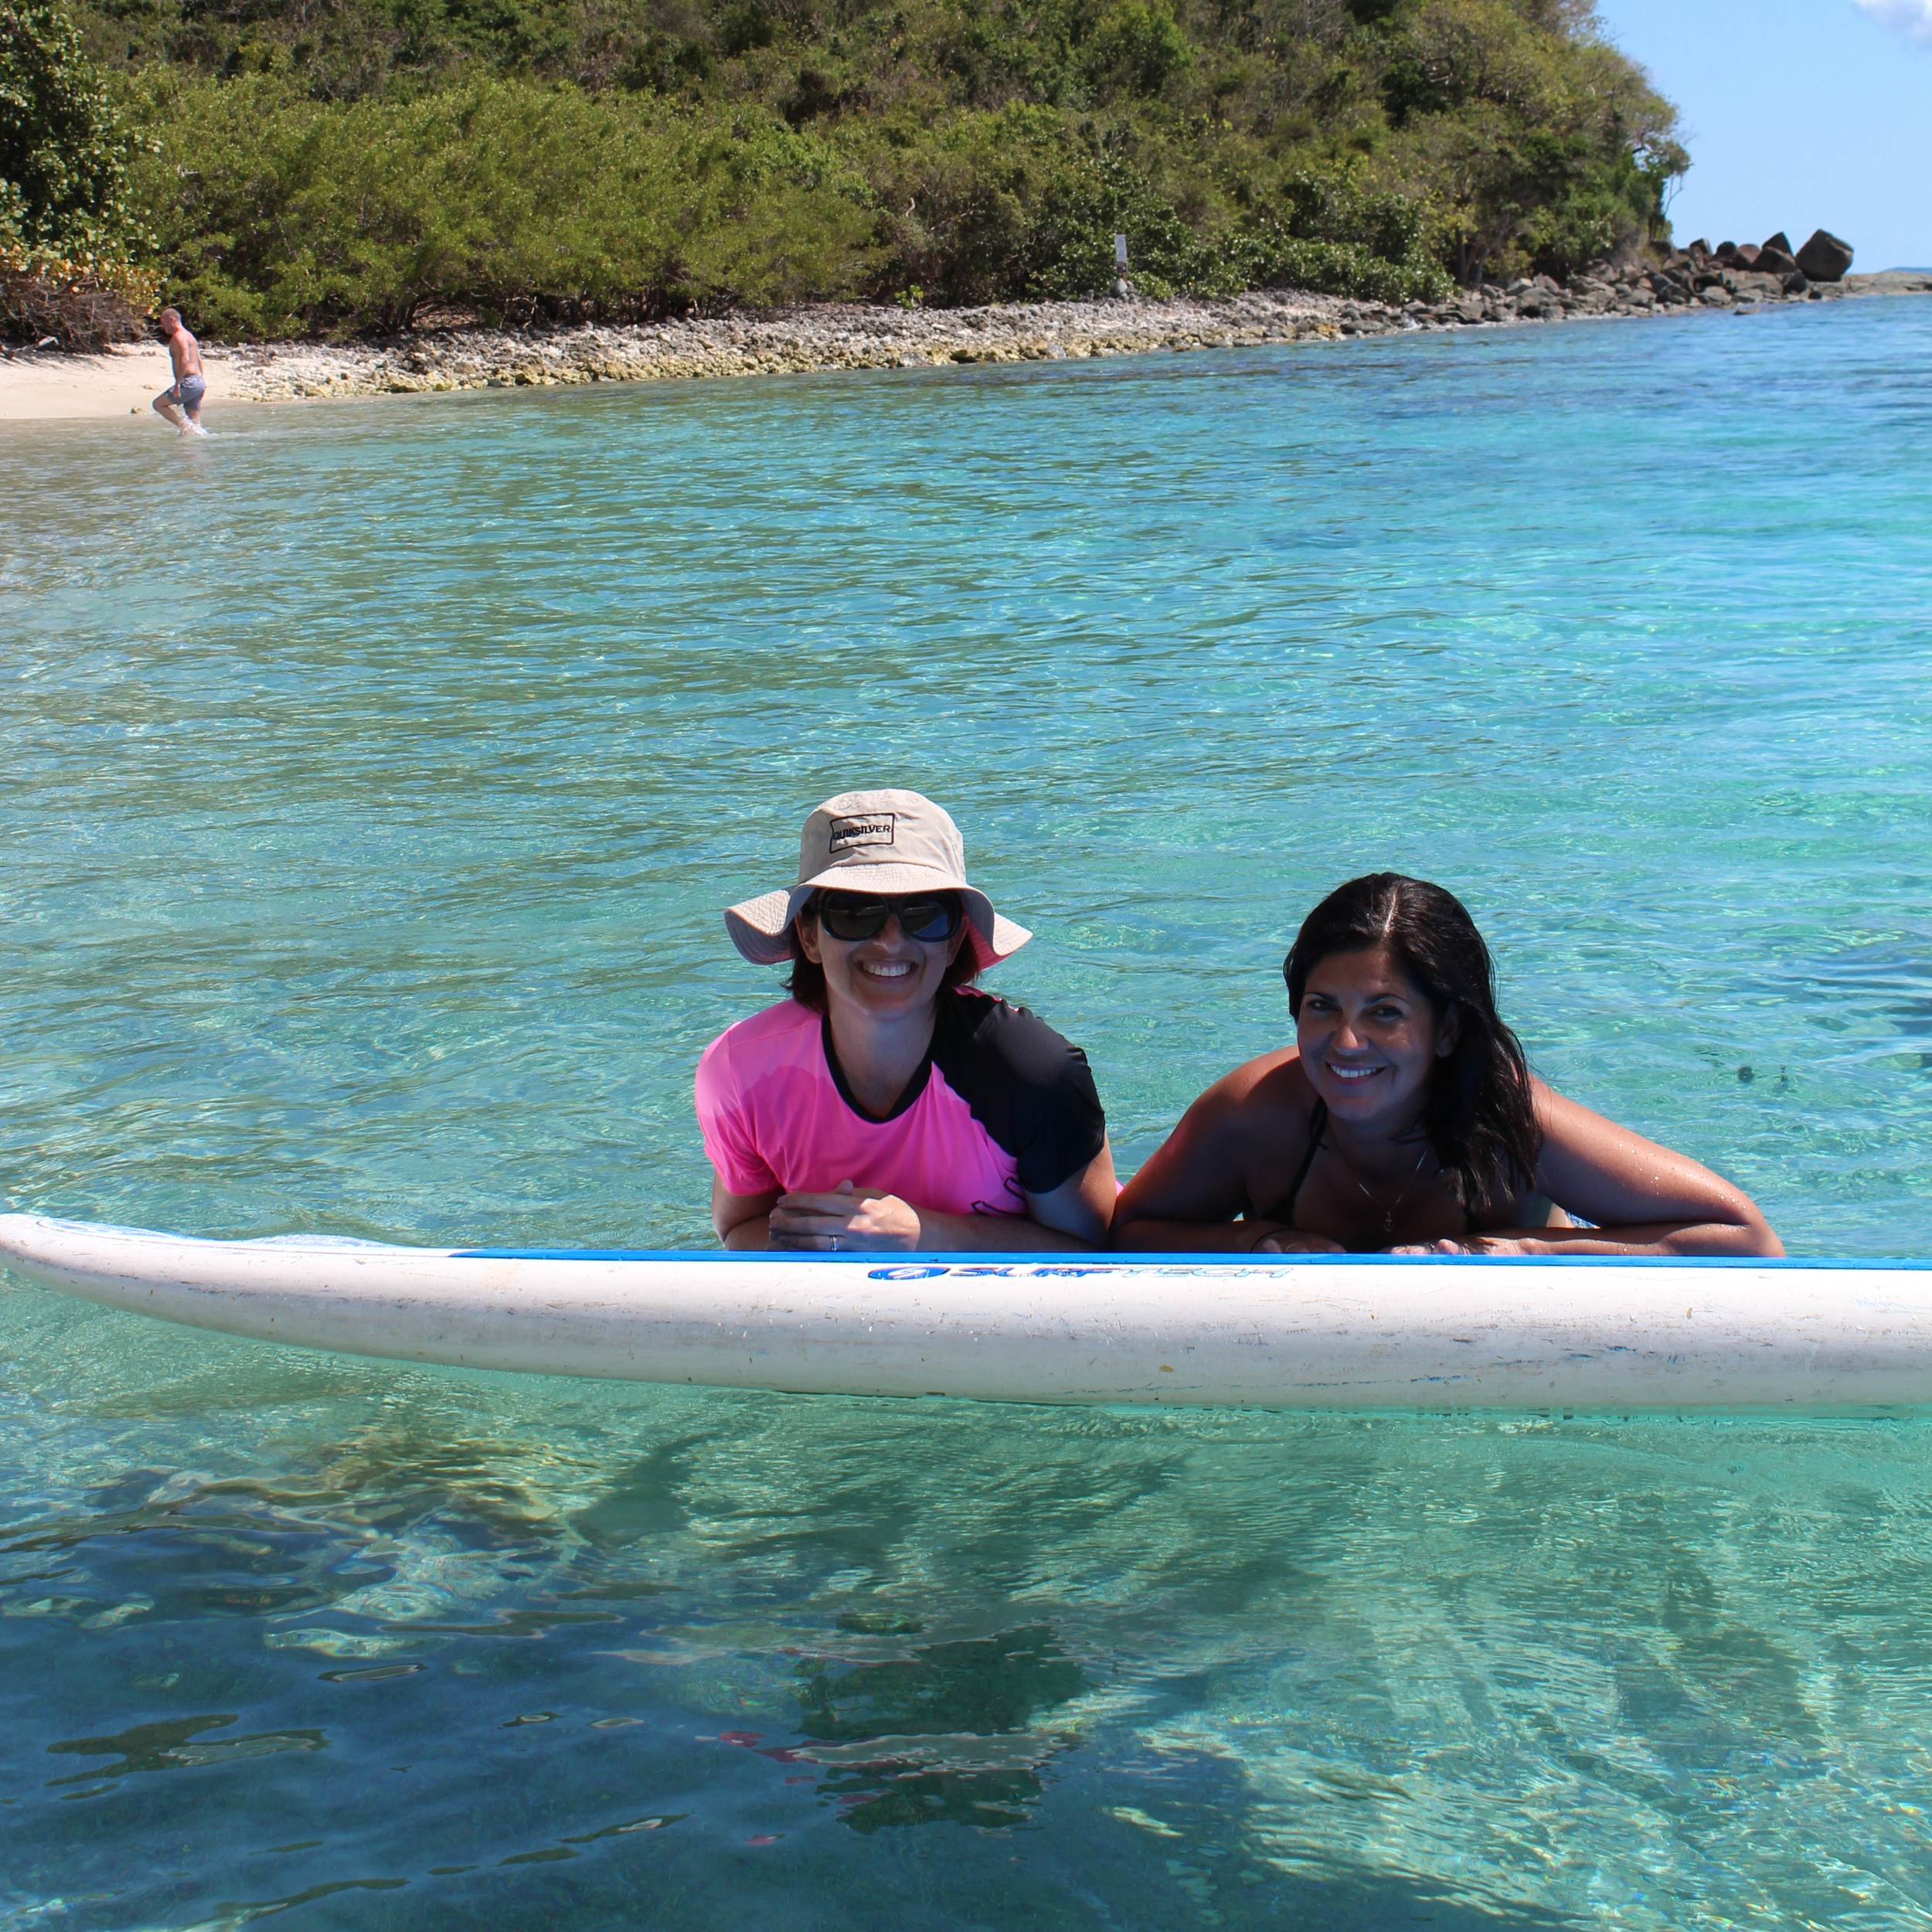 We used the paddleboard as a table for our lunch. Photo: Javier Vélez Arocho